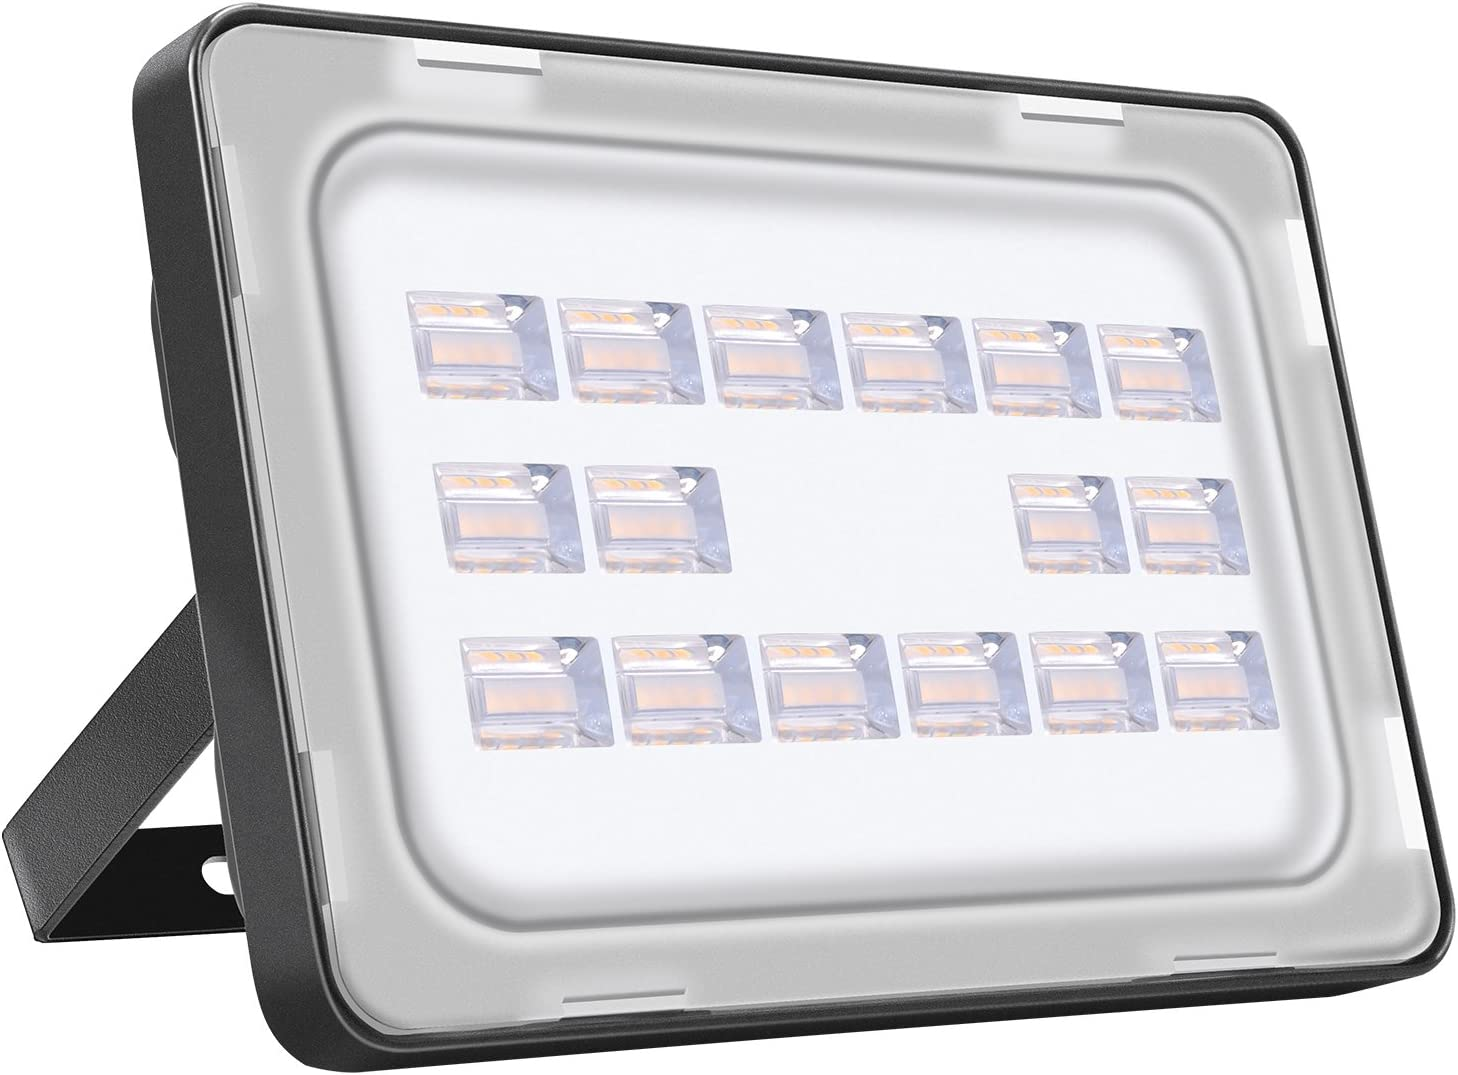 10X 100W LED Floodlight Outdoor Garden Cold//Cool White Security Flood Light IP65